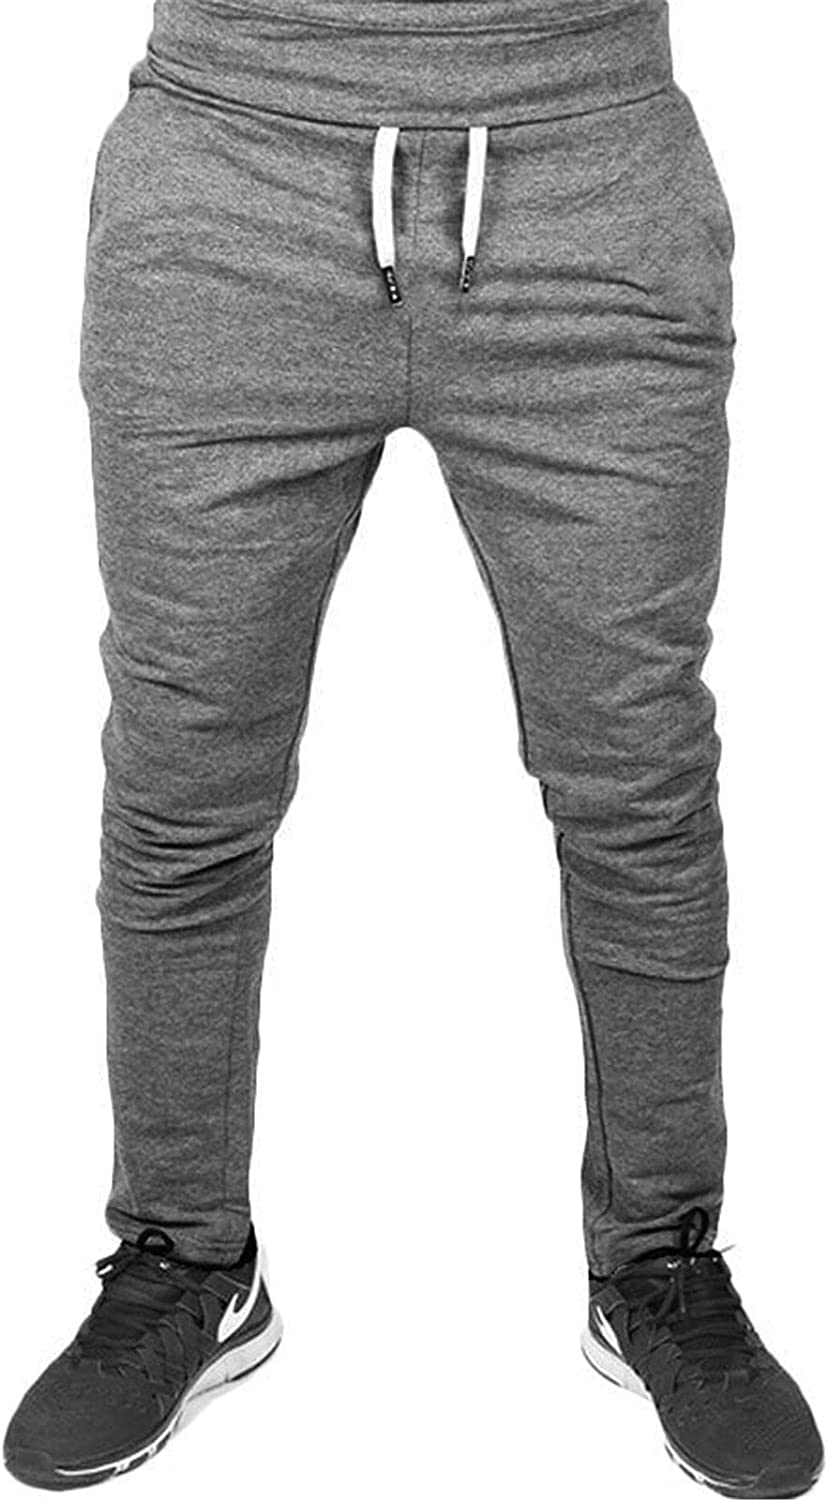 Men's Cargo Pants Slim Fit Casual Jogger Pant Chino Trousers Sweatpants with Pockets (Large,Dark gray)